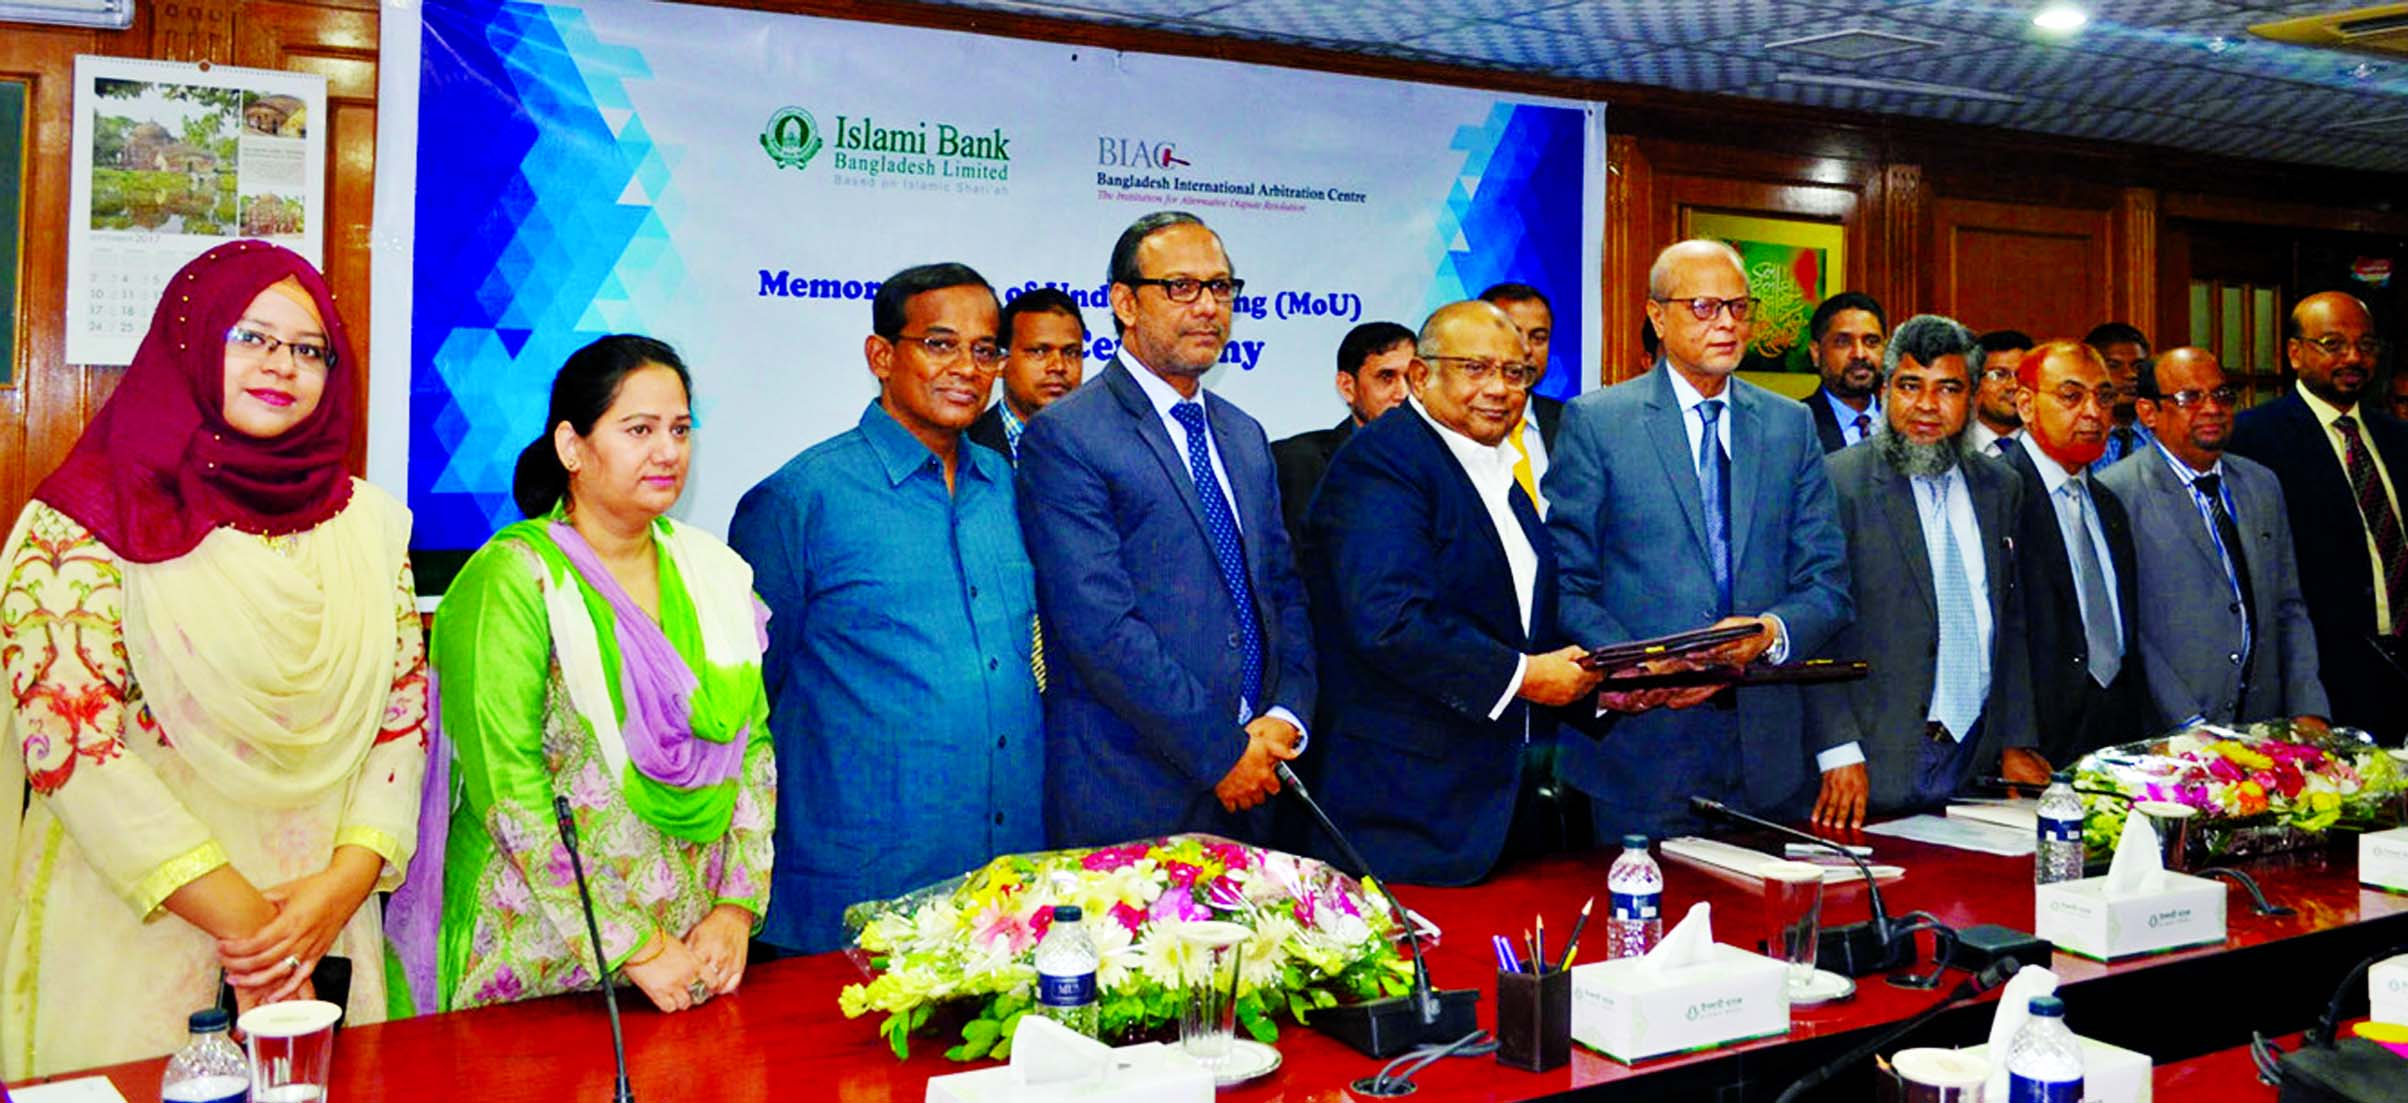 Muhammad A (Rumee) Ali, Chief Executive Officer of BIAC and Md. Abdul Hamid Miah, Managing Director of Islami Bank Bangladesh Limited signed the agreement at the bank's head office recently. Under this deal, the institute will assist to resolve the commercial, contractual and money loan disputes through Alternative Dispute Resolution.